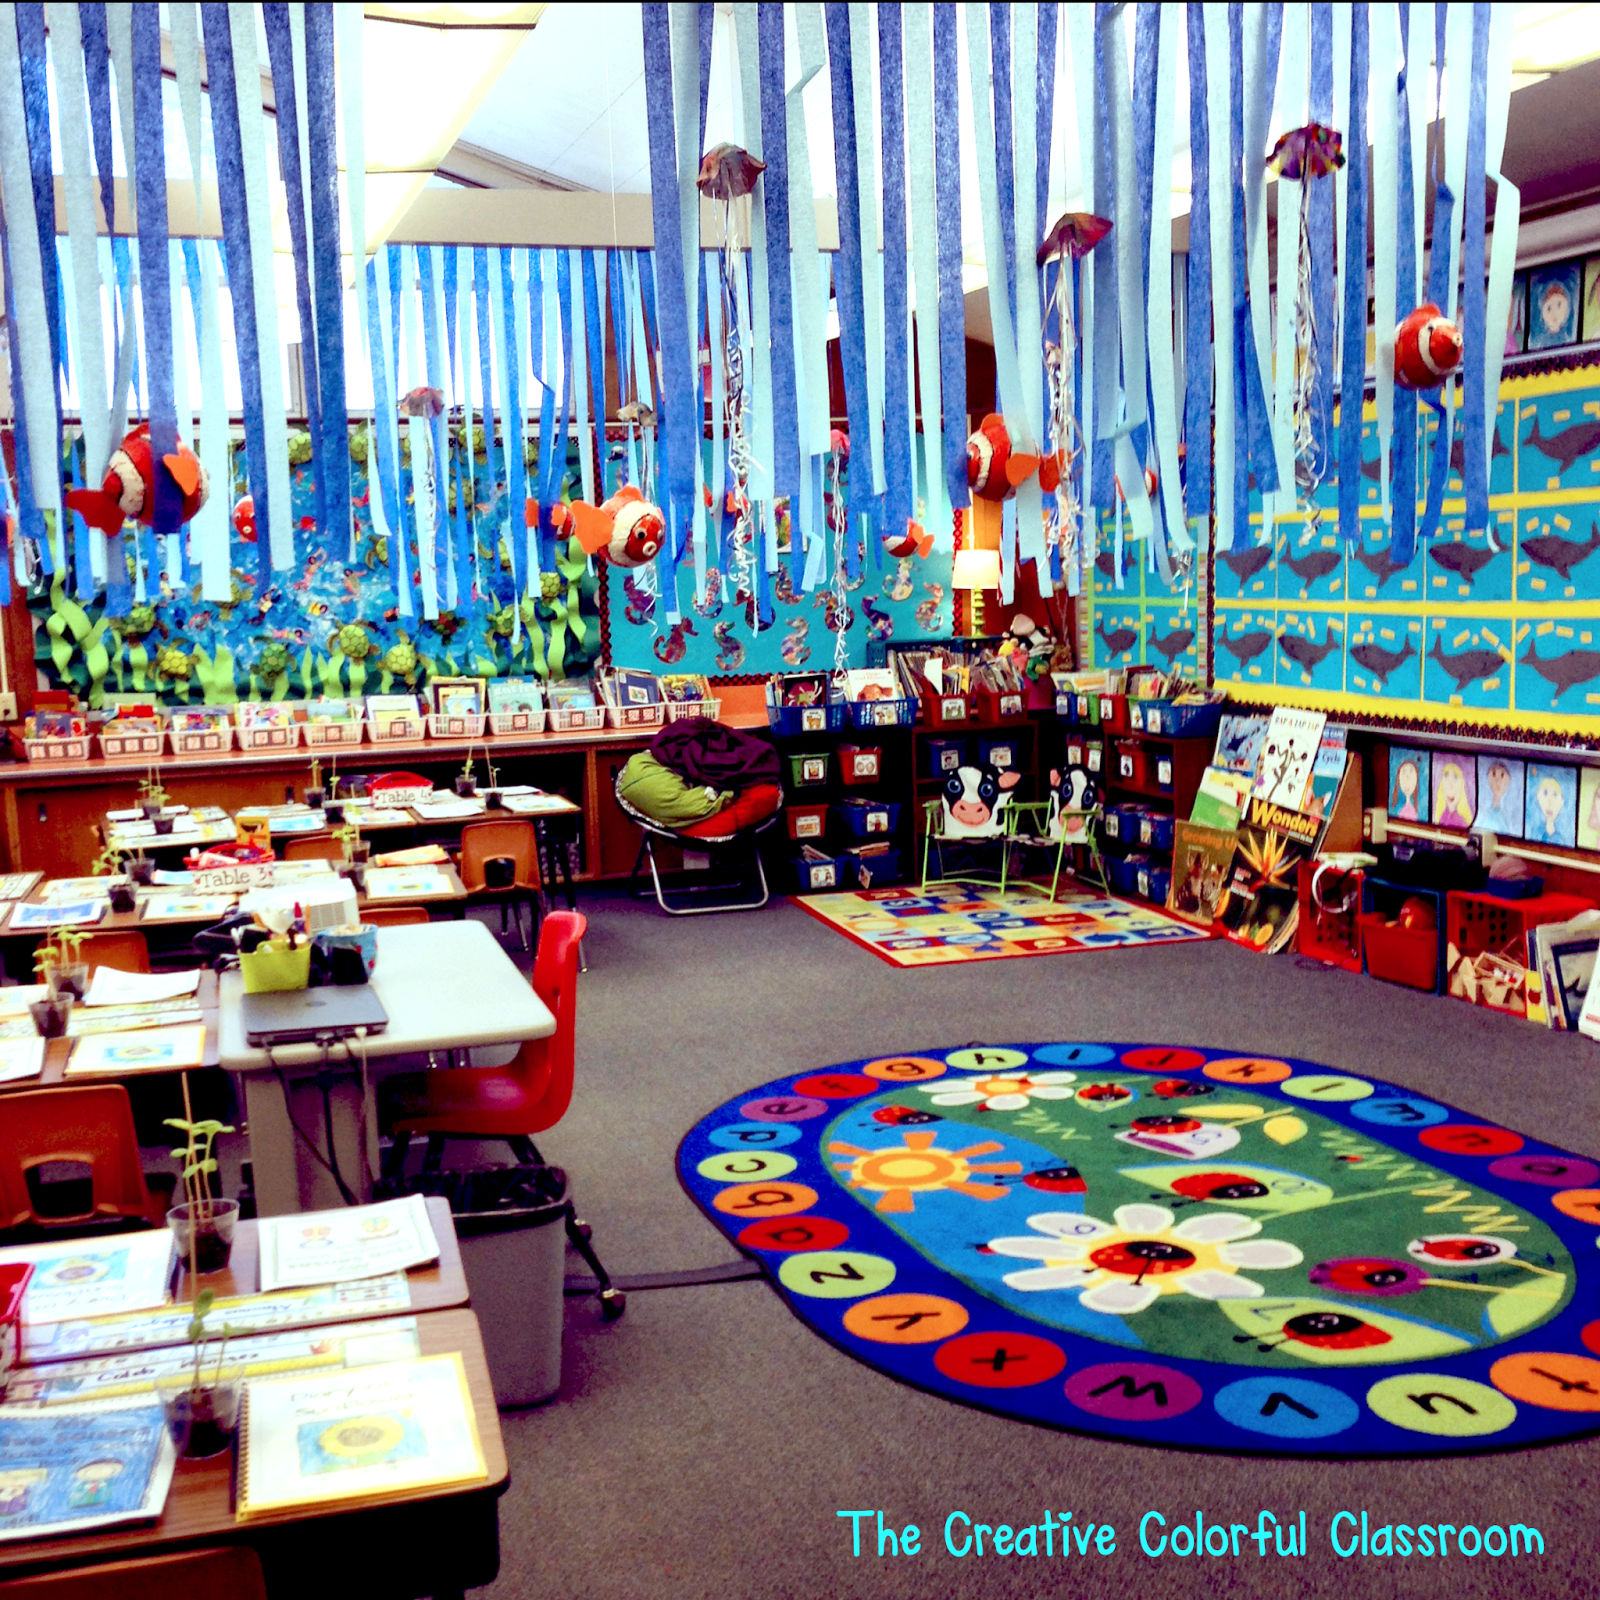 Classroom Research Ideas ~ The creative colorful classroom open house and our ocean